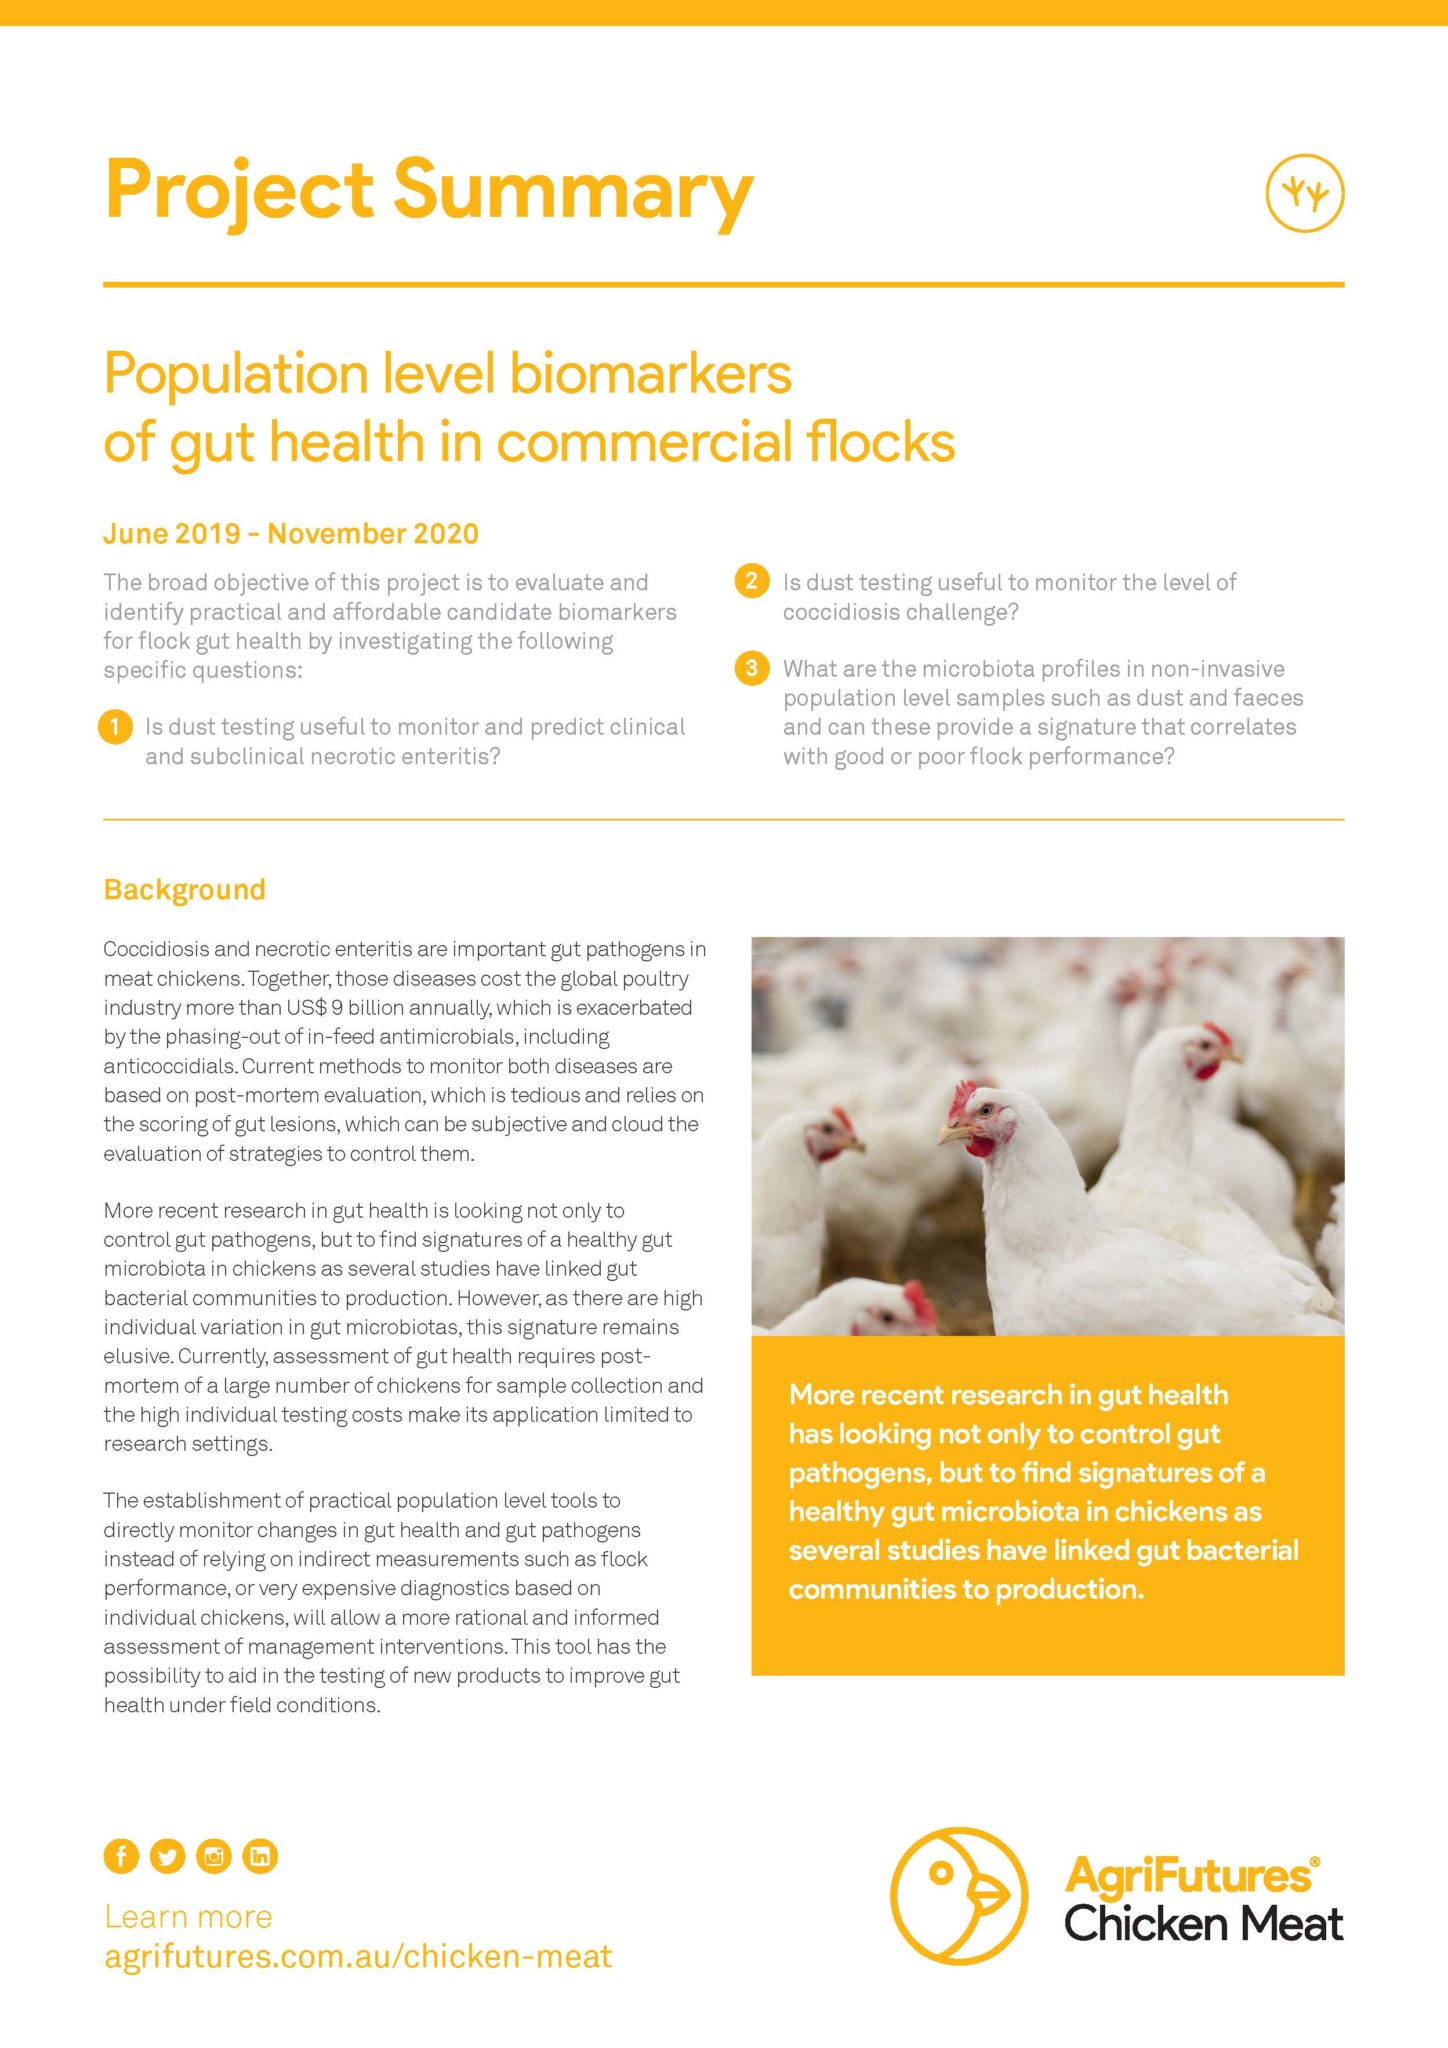 Project Summary: Population level biomarkers of gut health in commercial flocks - image